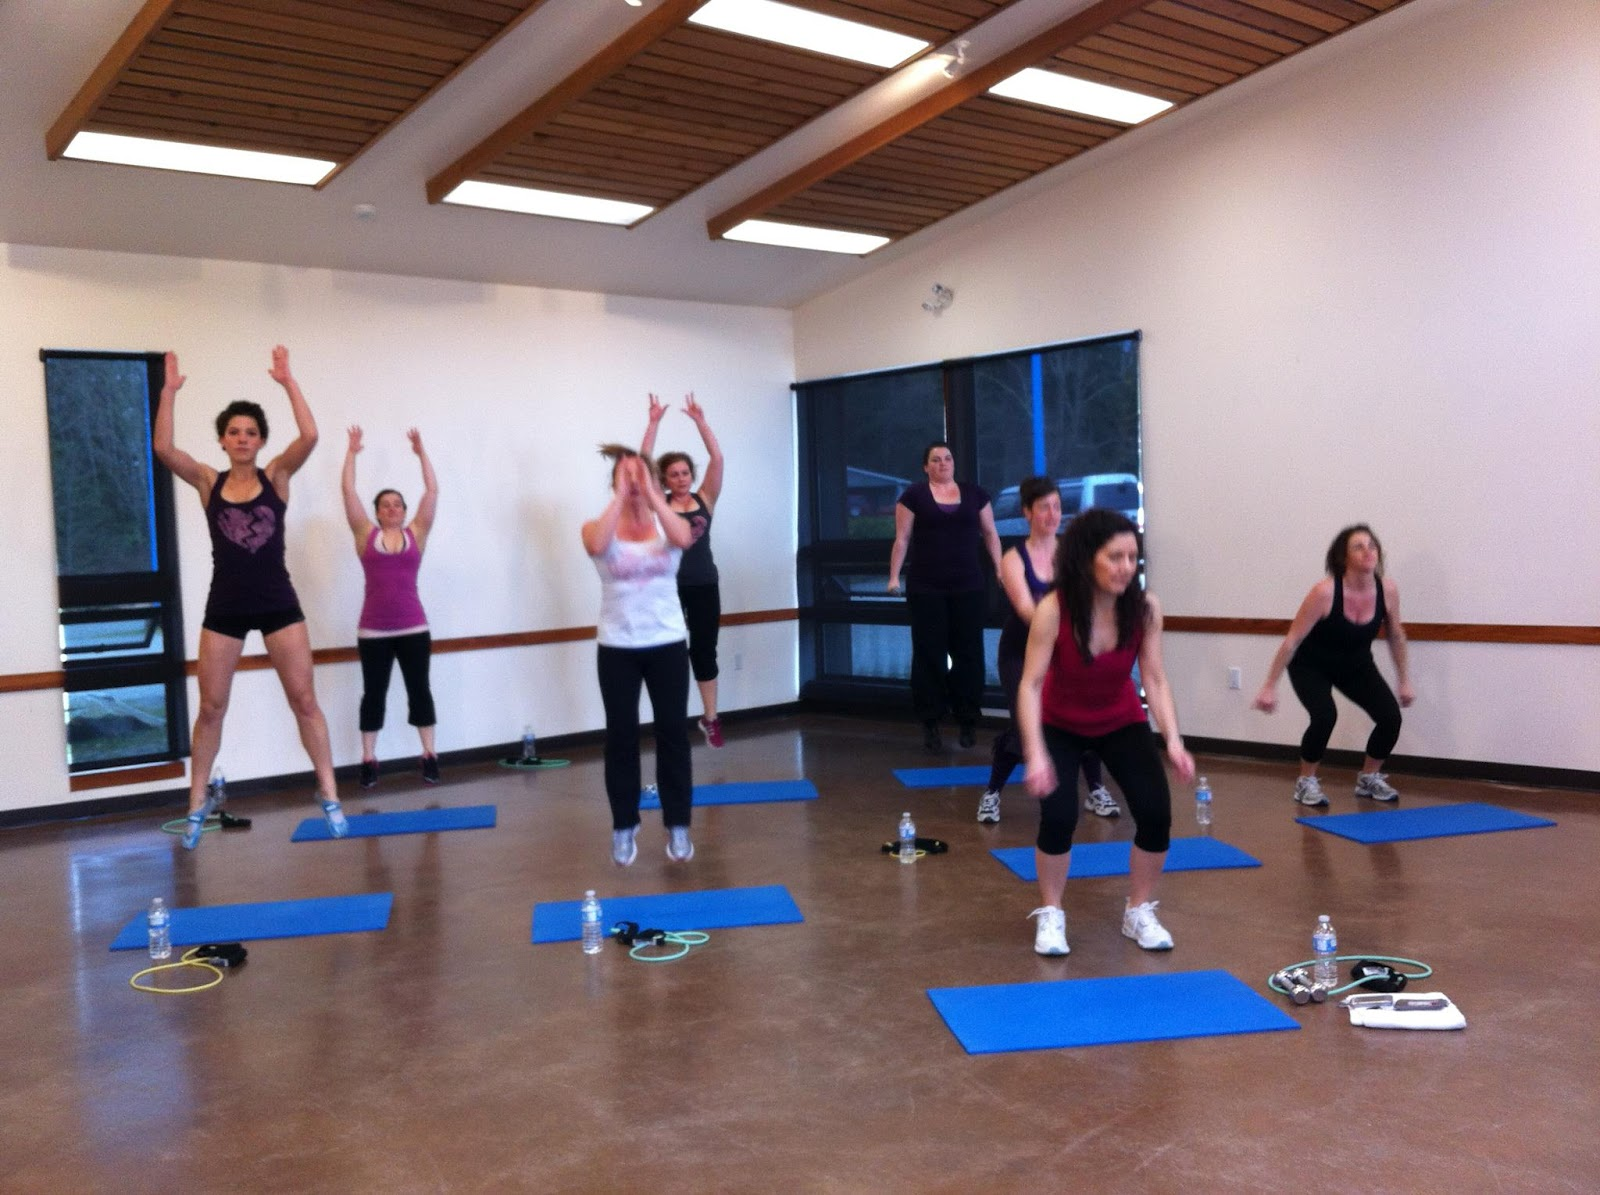 The Garage Private Personal Training Studio Fall Classes At The